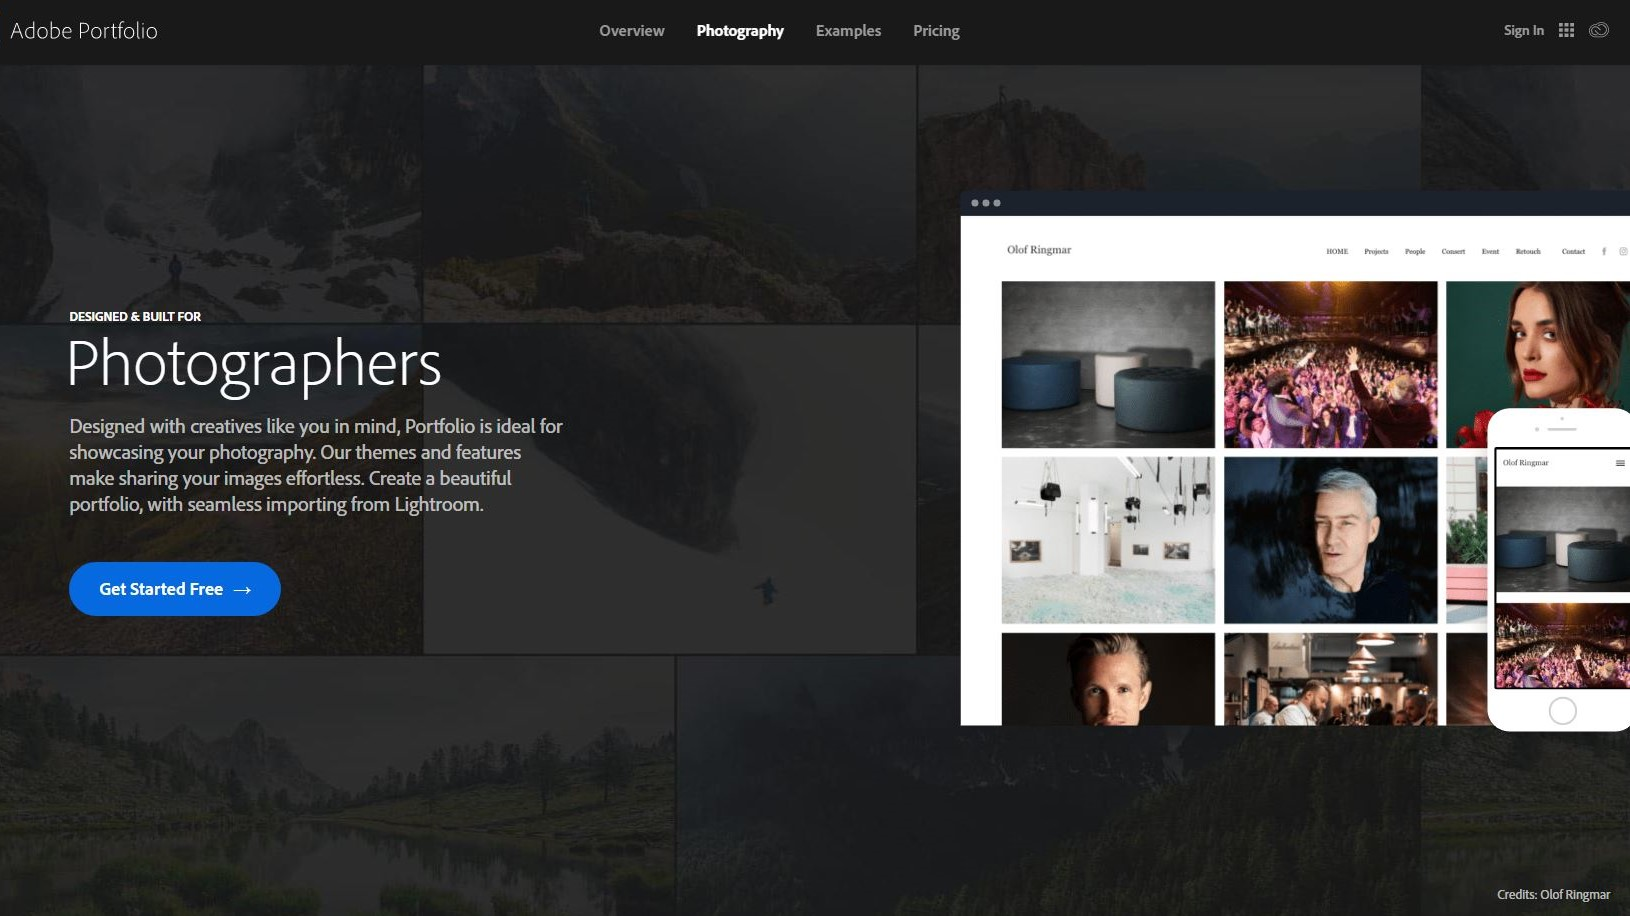 Adobe Portfolio review | TechRadar